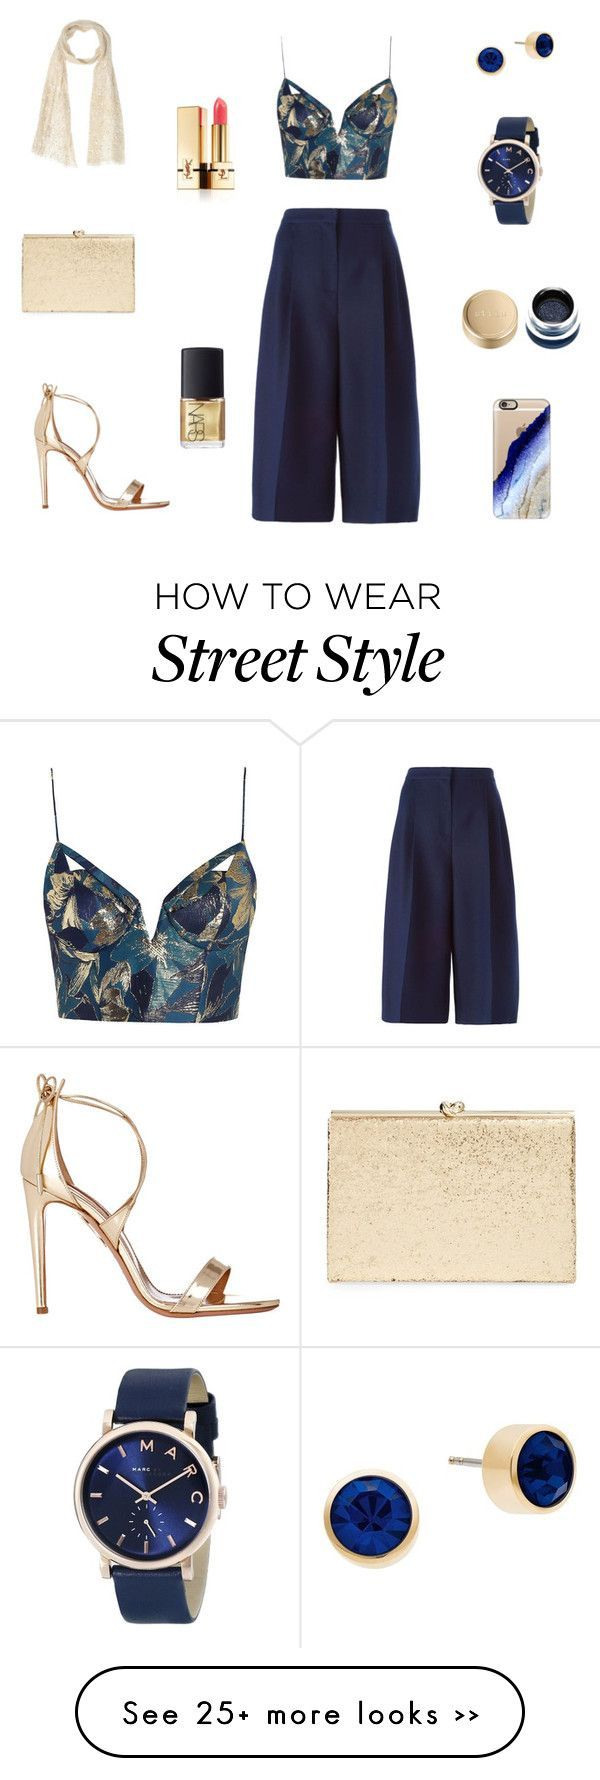 """Sapphire"" by lucija93 on Polyvore featuring mode, Zimmermann, Valentino, Michael Kors, Aquazzura, Marc Jacobs, Kate Spade, SCERVINO STREET, Casetify et Yves Saint Laurent"